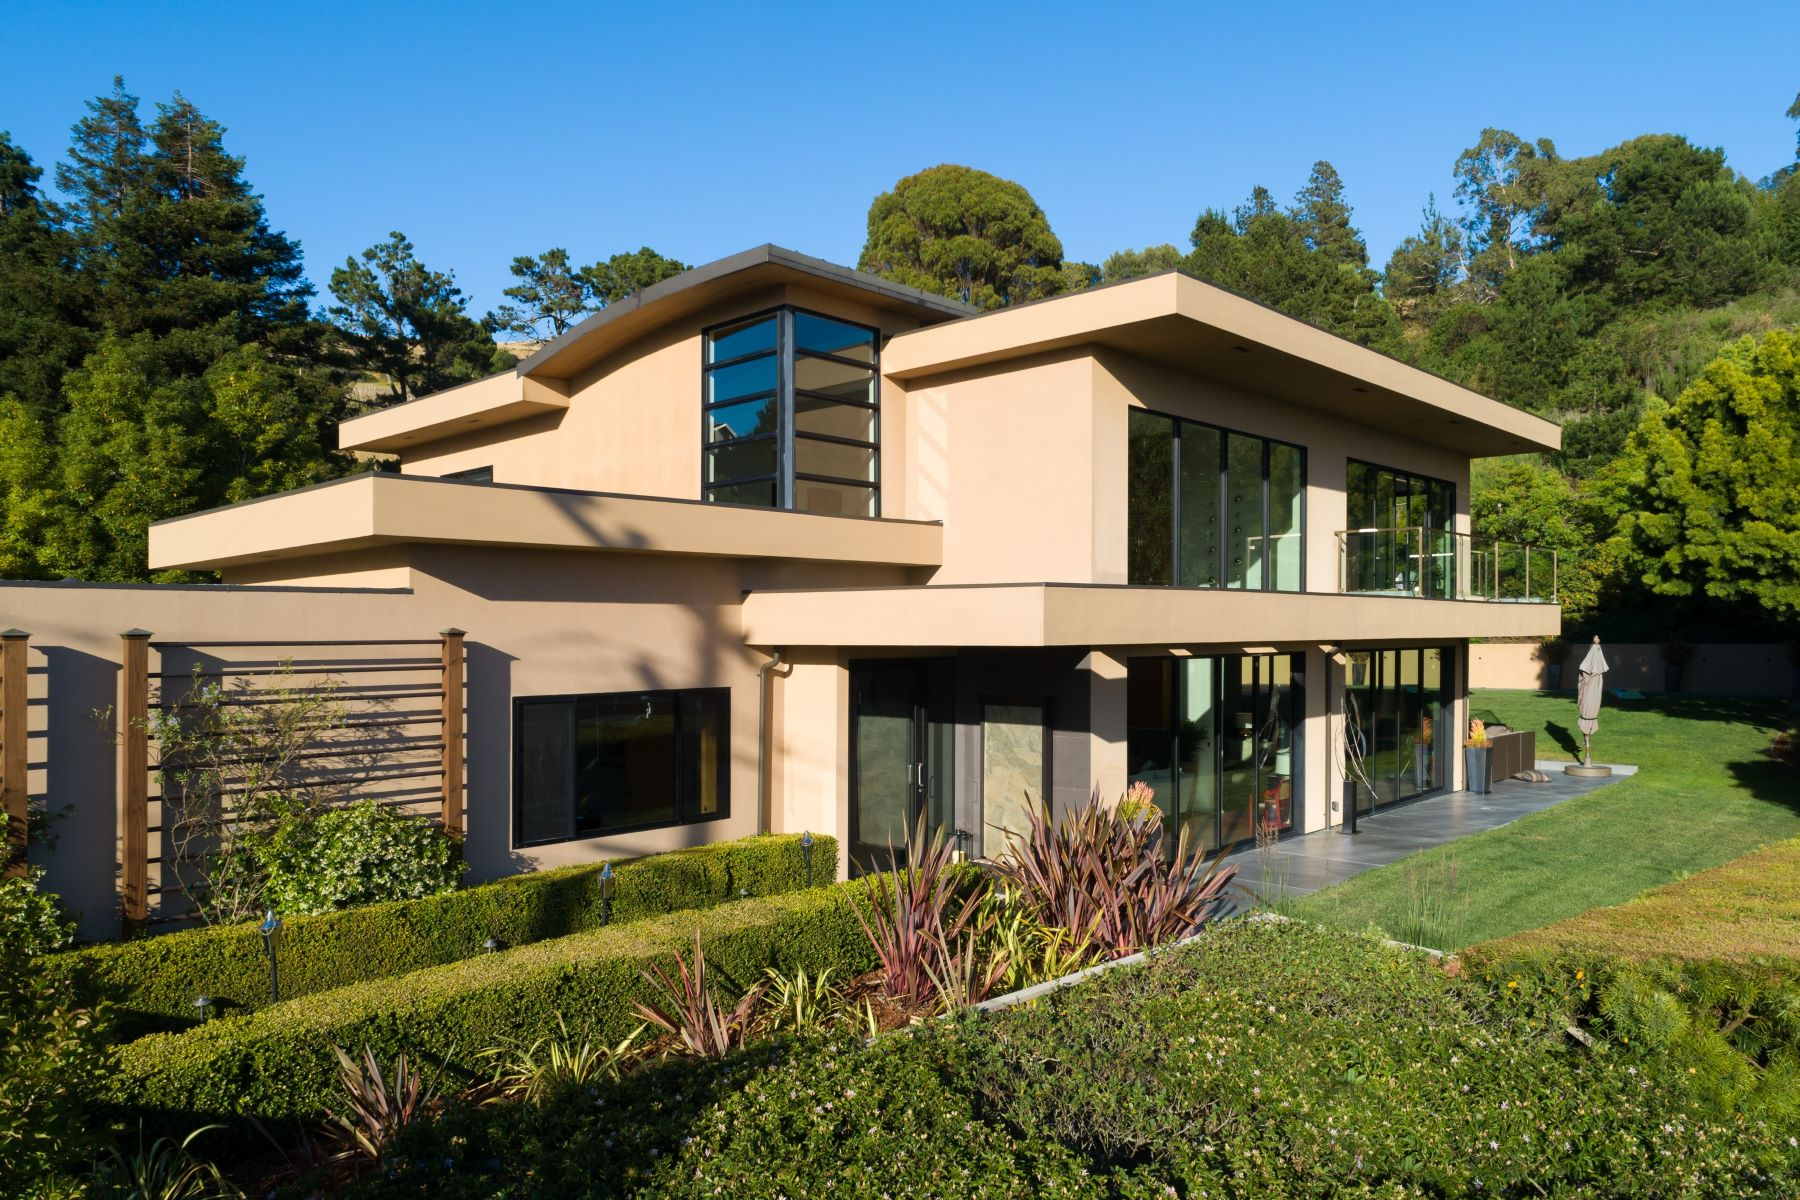 Single Family Homes for Sale at Contemporary Tiburon! 166 Rock Hill Drive, Tiburon, California 94920 United States